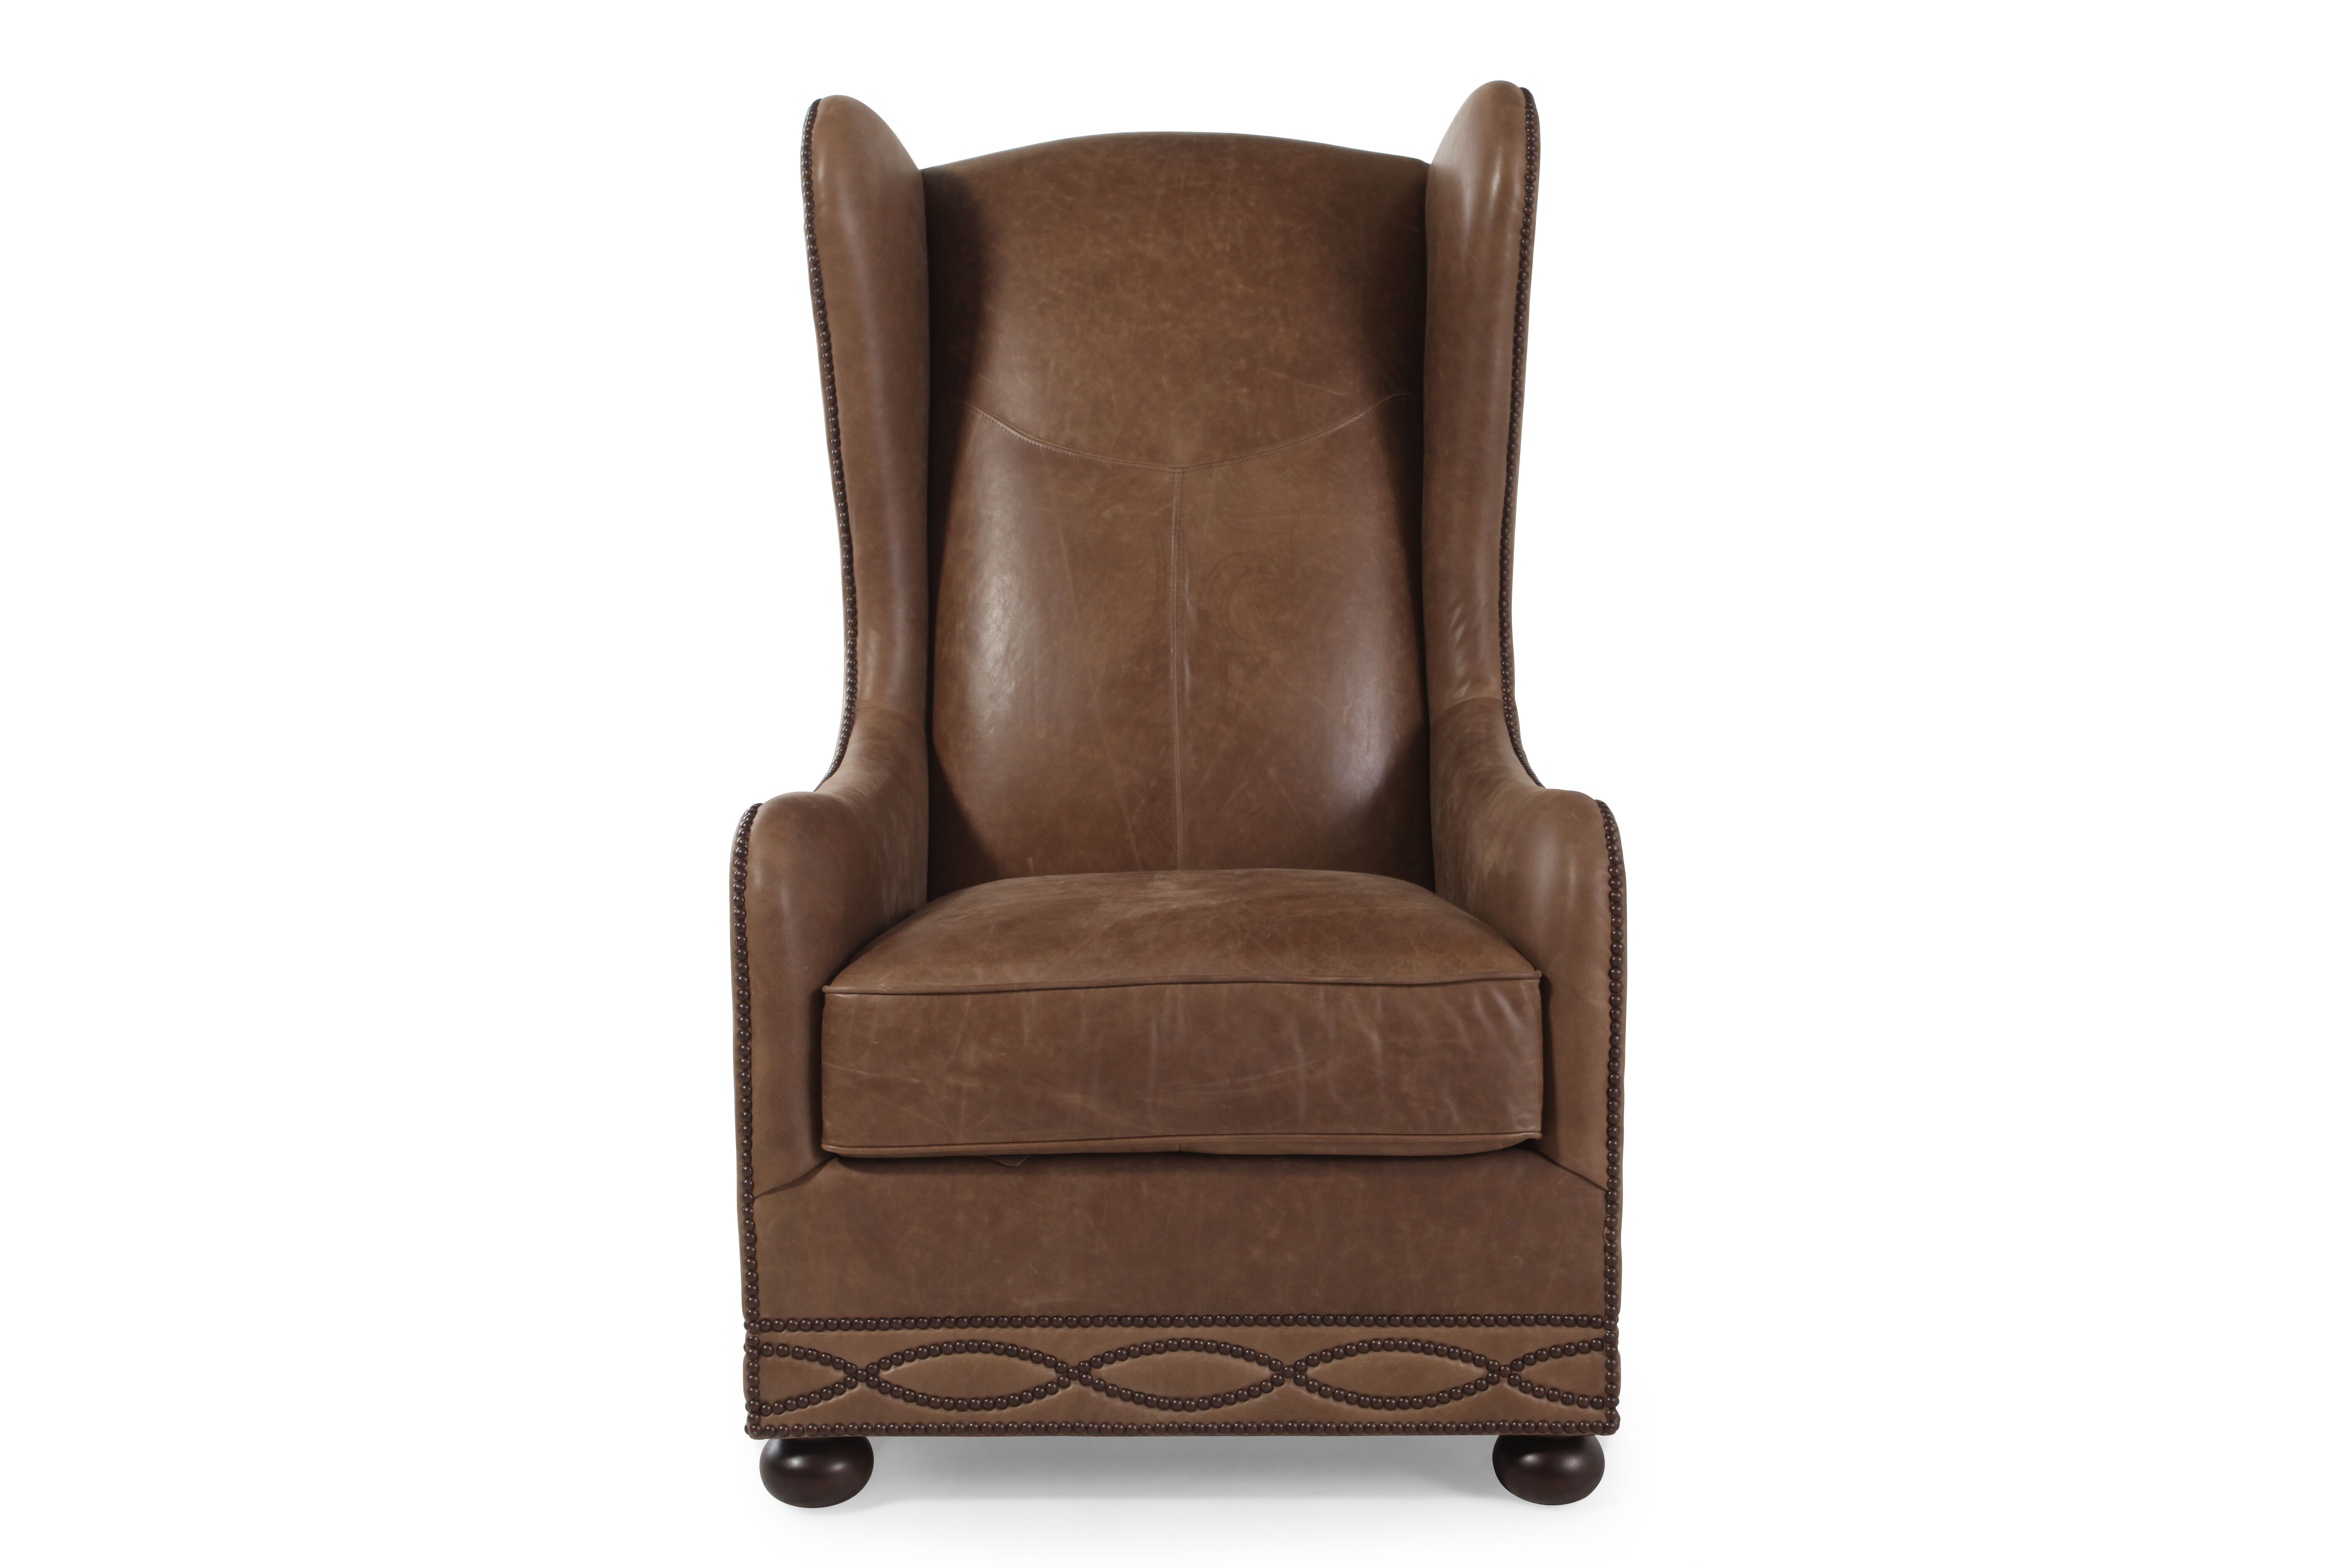 Bernhardt Leather Chair Bernhardt Blaine Leather Chair Mathis Brothers Furniture